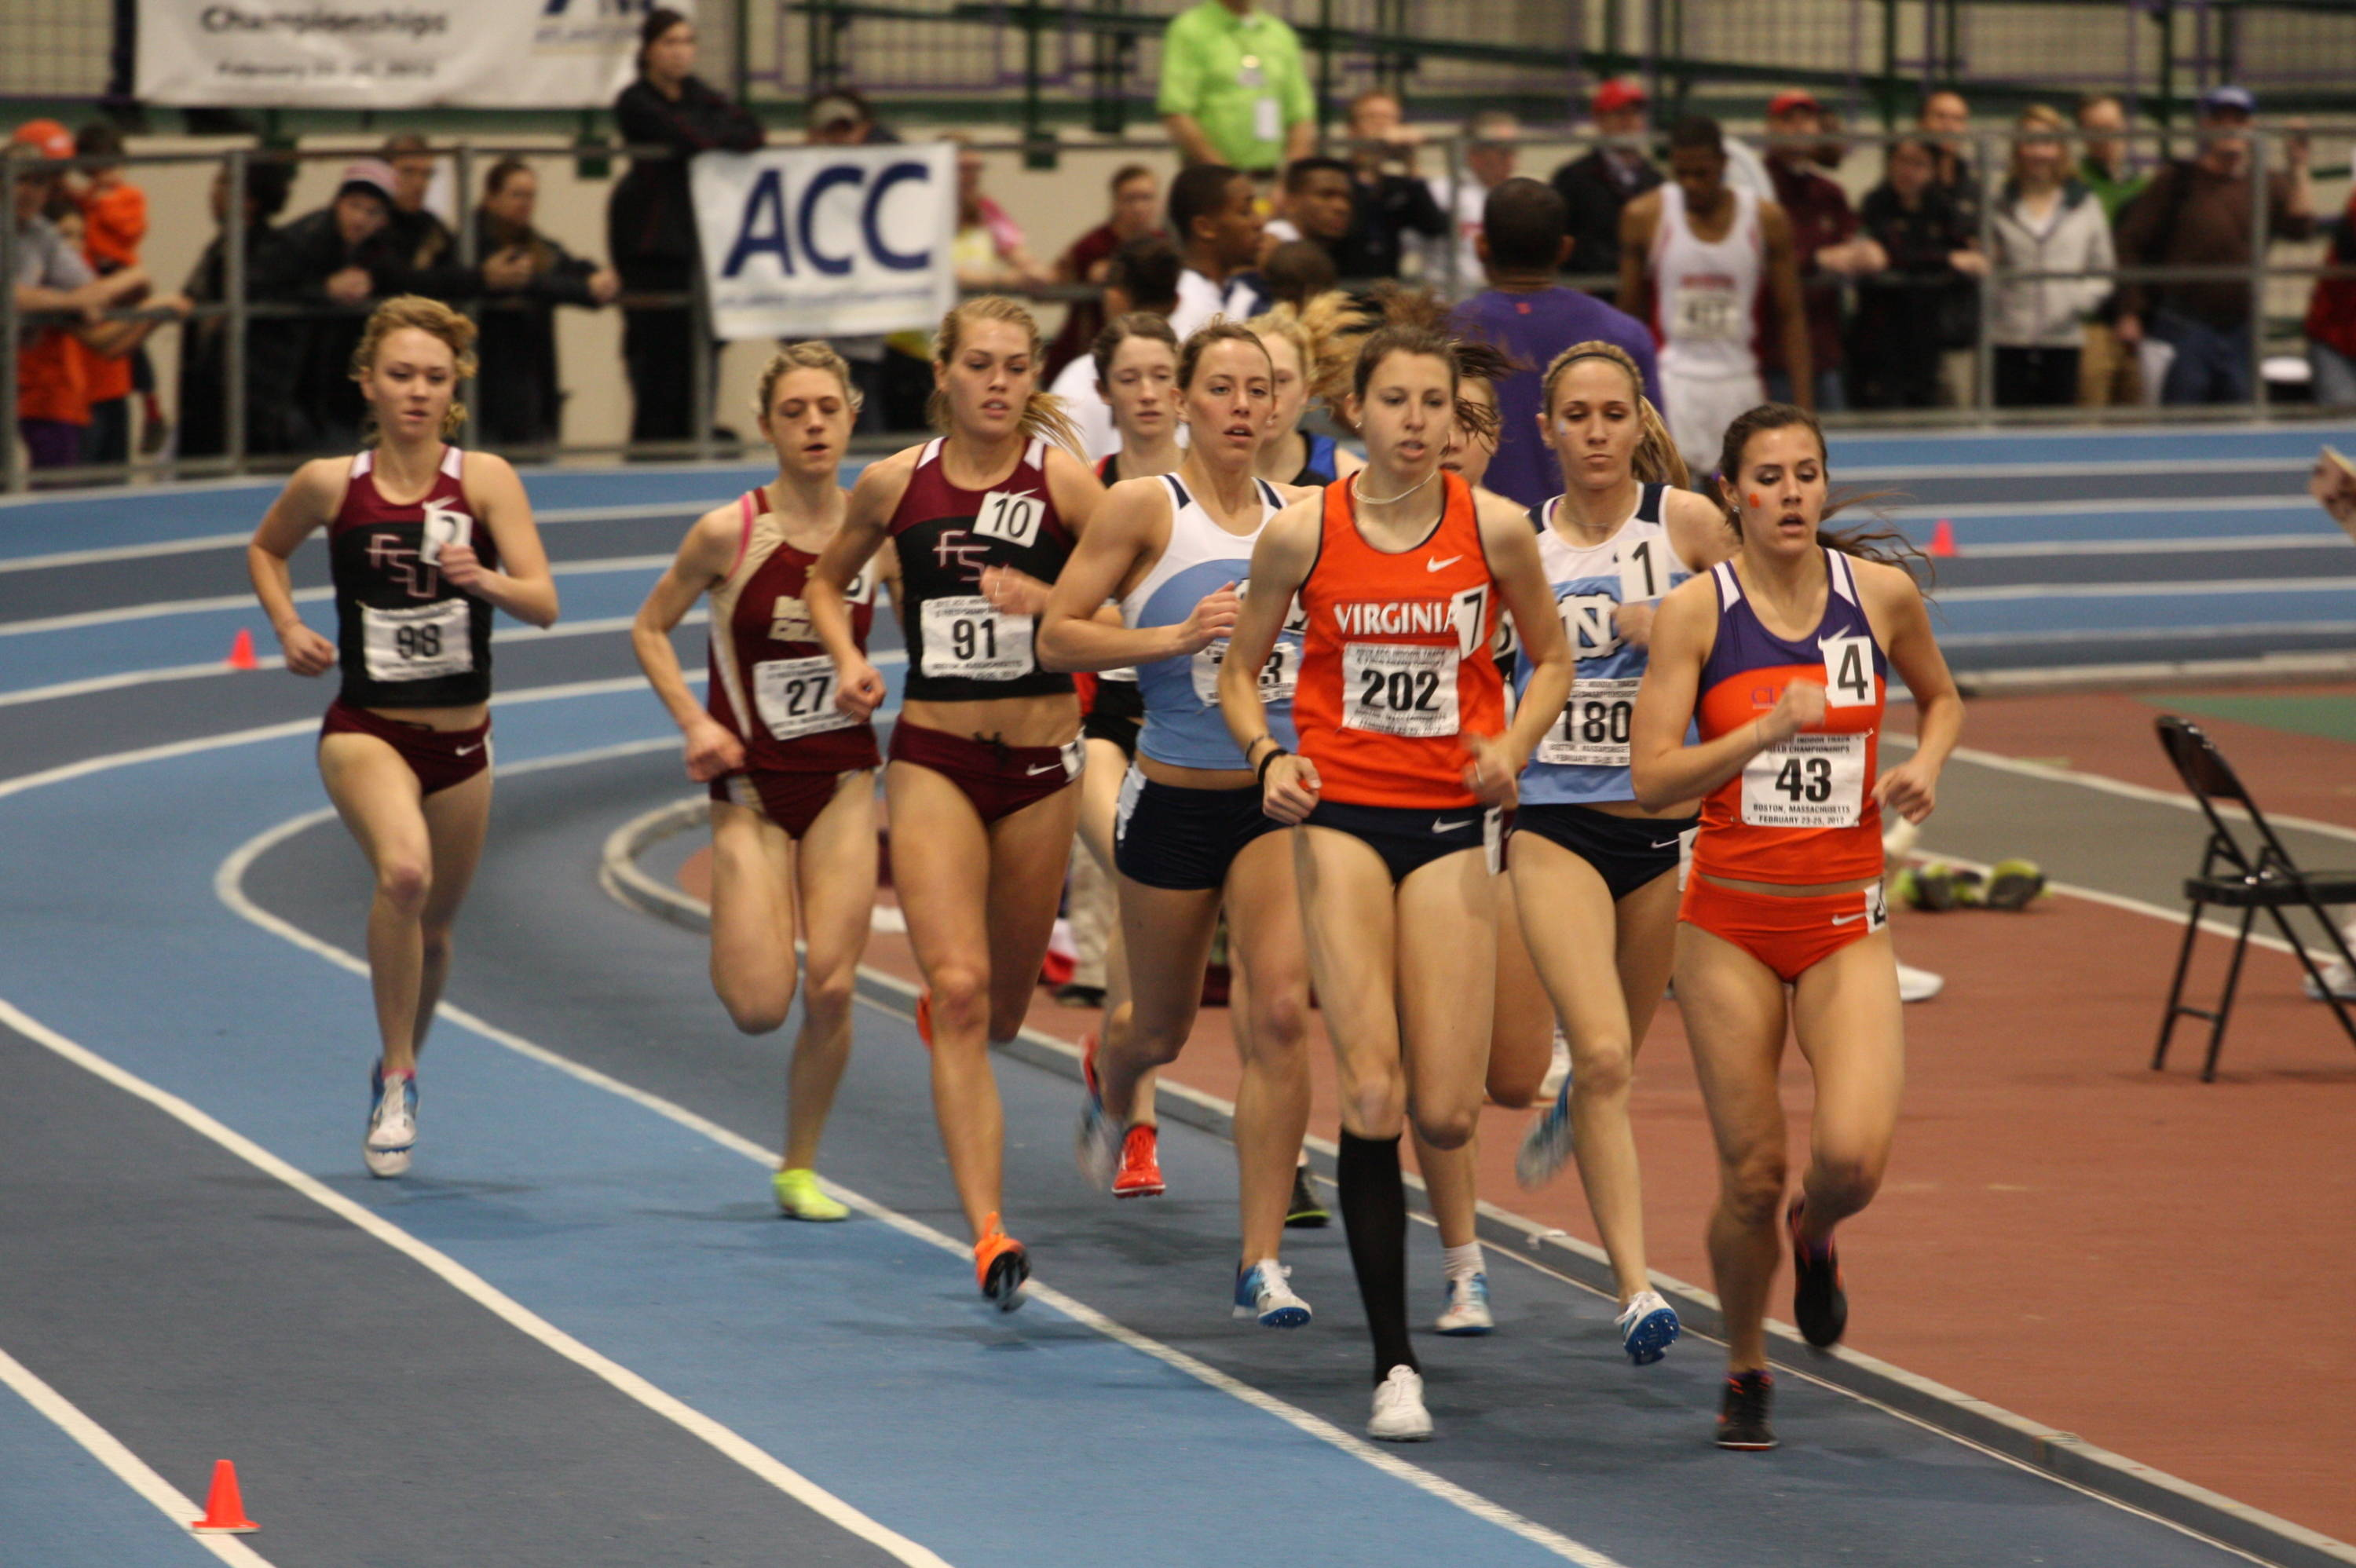 FSU's three freshmen - Colleen Quigley, Linden Hall and Aubree Worden - all scored in the mile for the 'Noles.